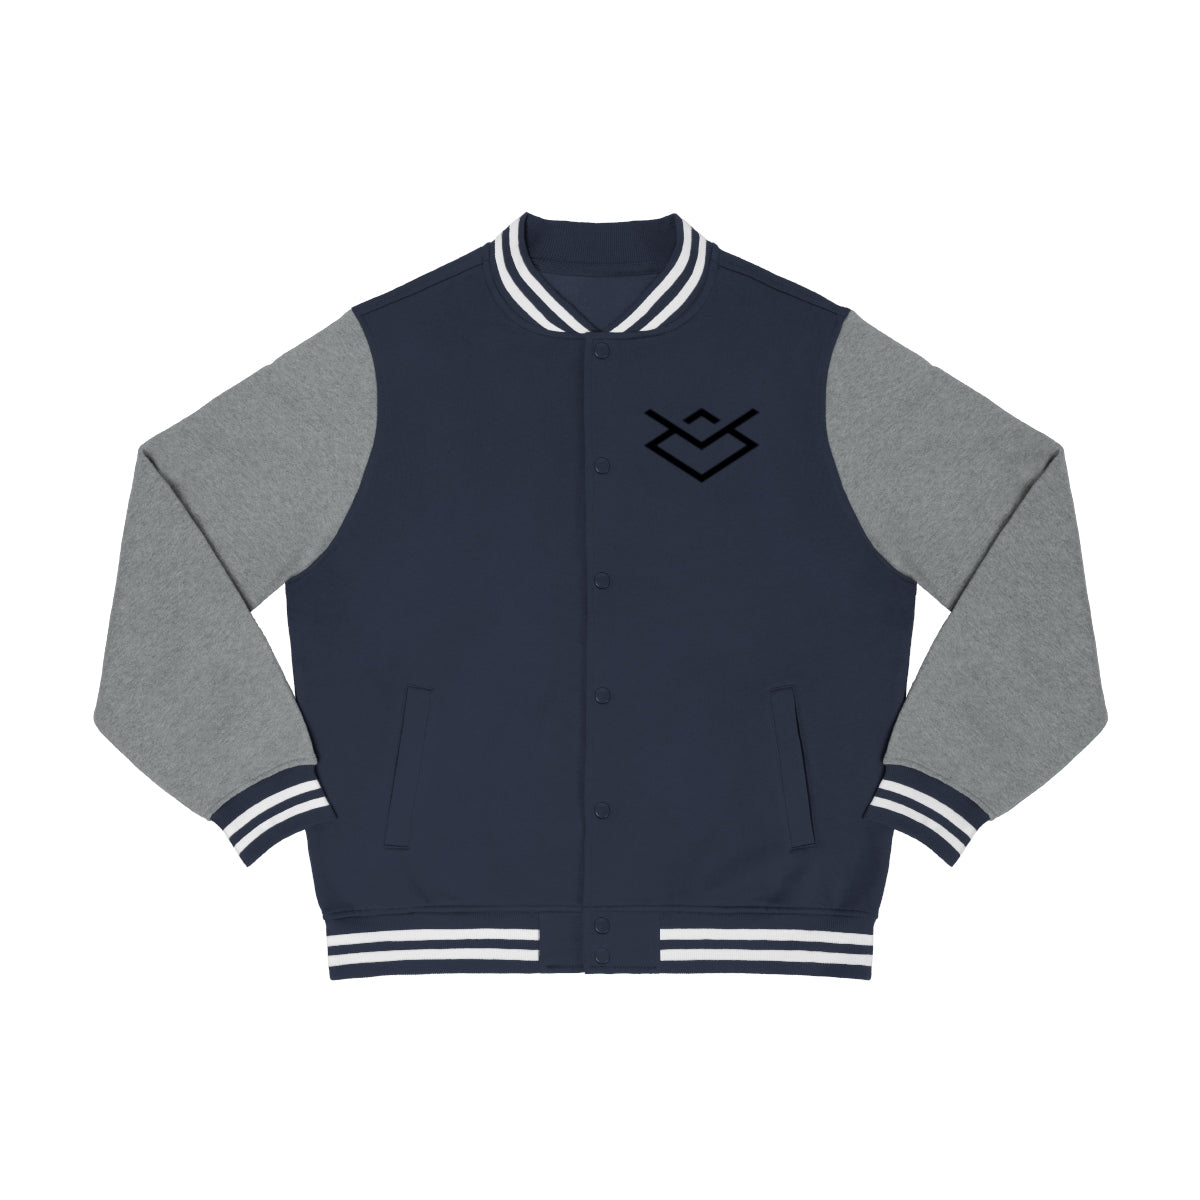 Mantis Men's Varsity Jacket